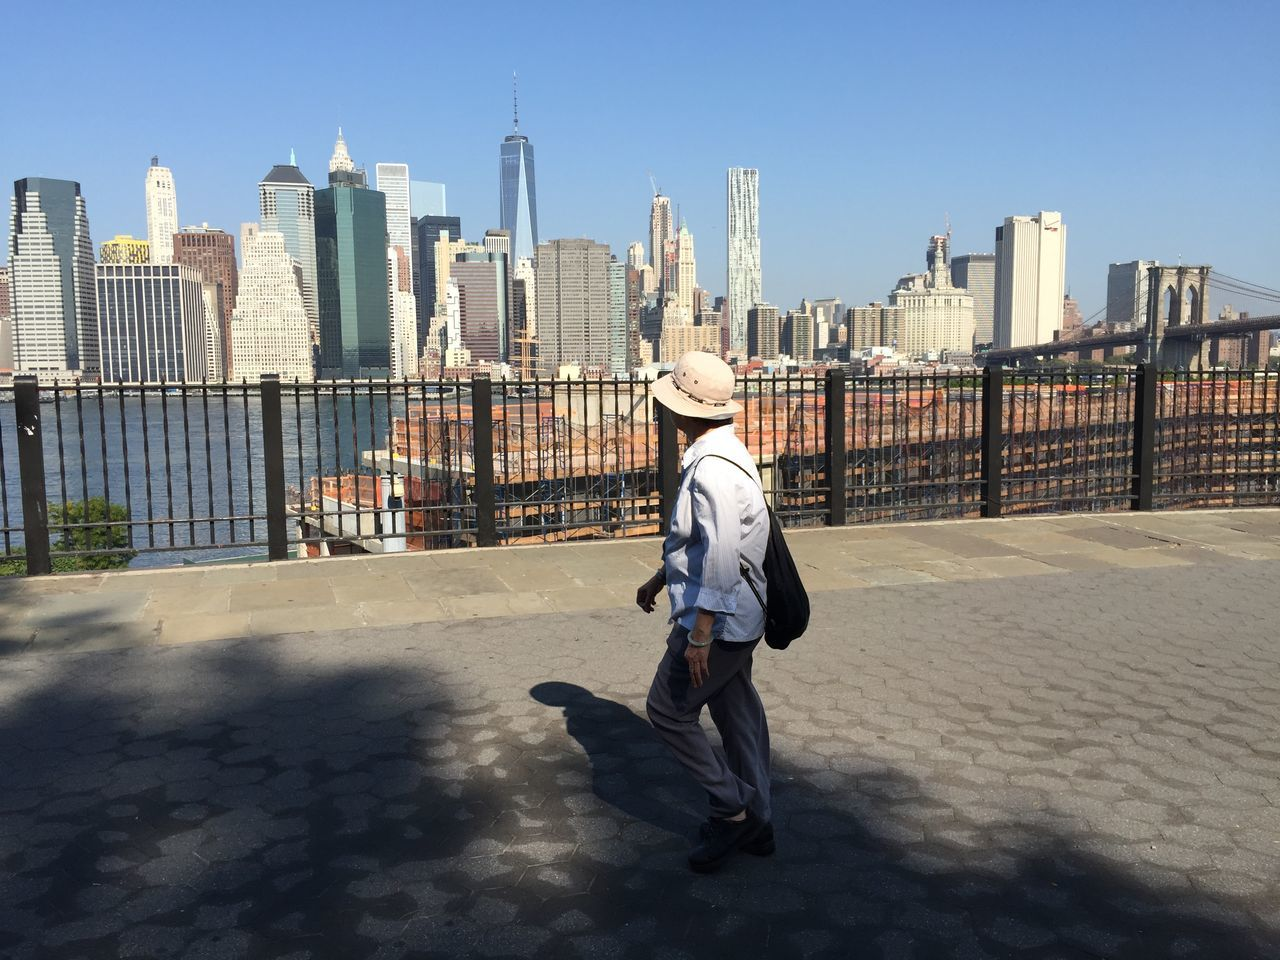 Full length of man walking on footpath by one world trade center and city against clear blue sky